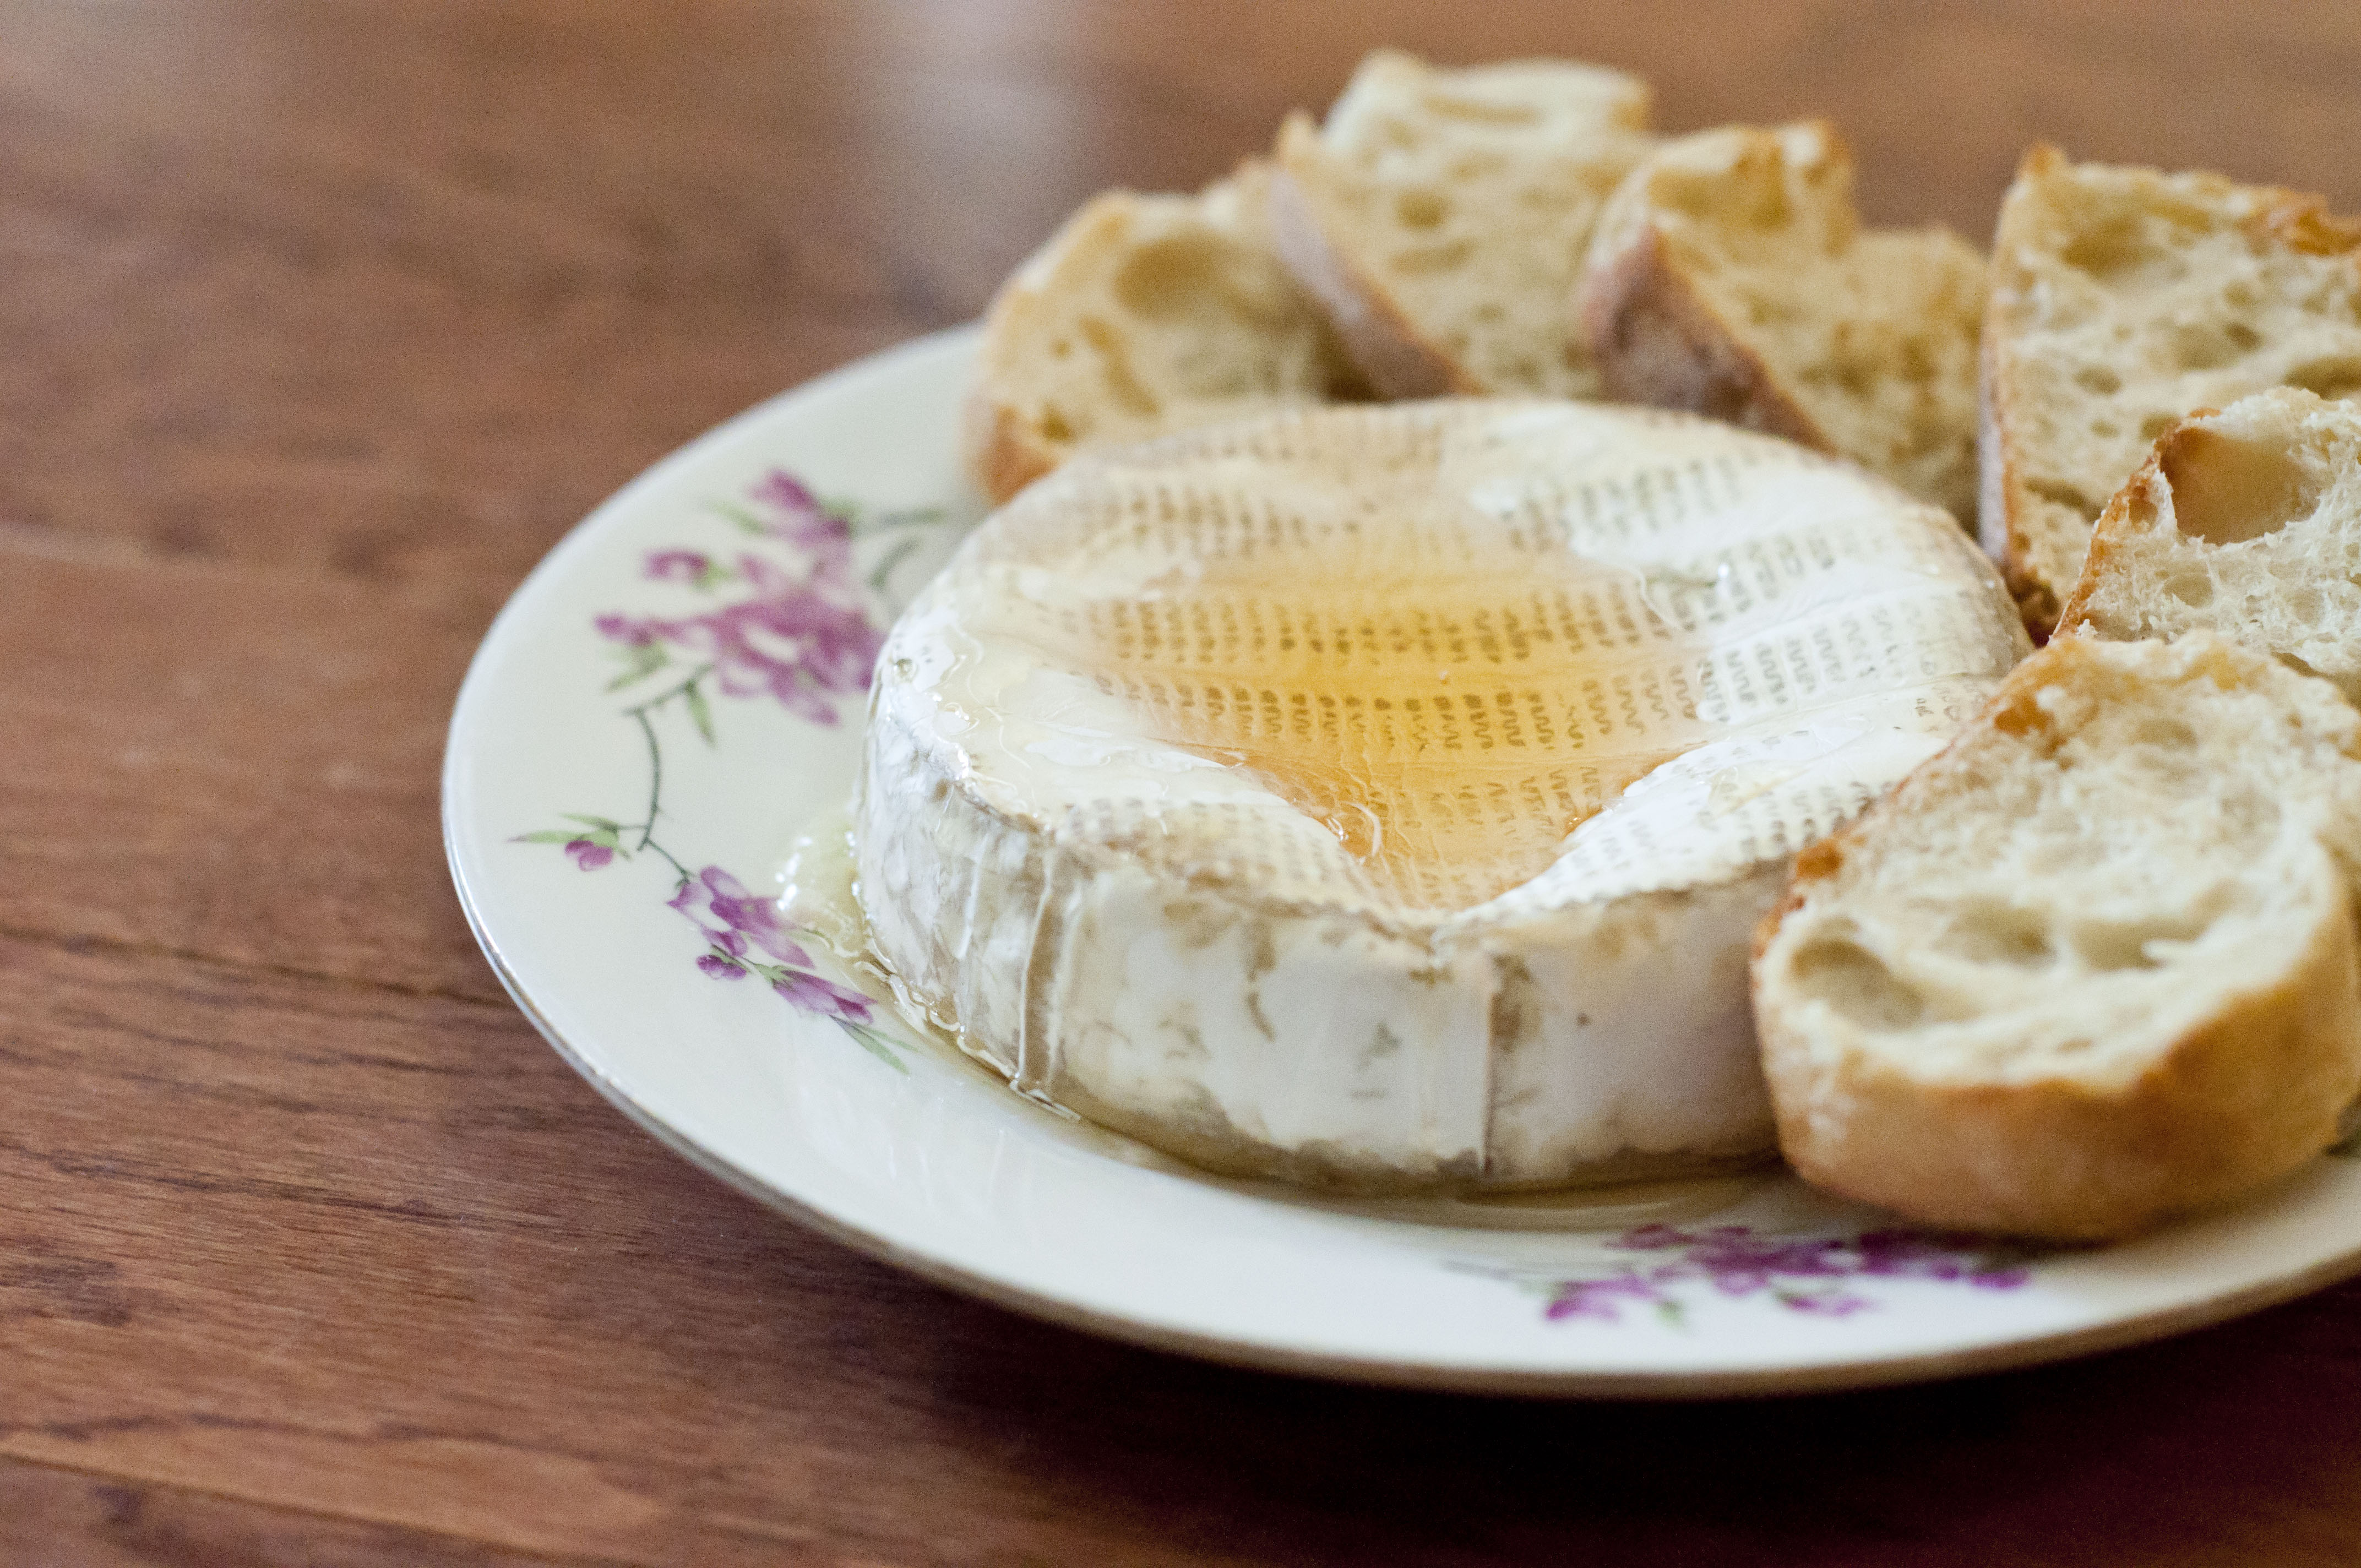 appetizer, baked brie, easy appetizer, easy baked brie, june dairy month, dairy, cheese, cheese recipe, brie recipe, easy brie recipe, easy dairy recipe, easy cheese appetizer, taste arkansas, food, cooking, recipes